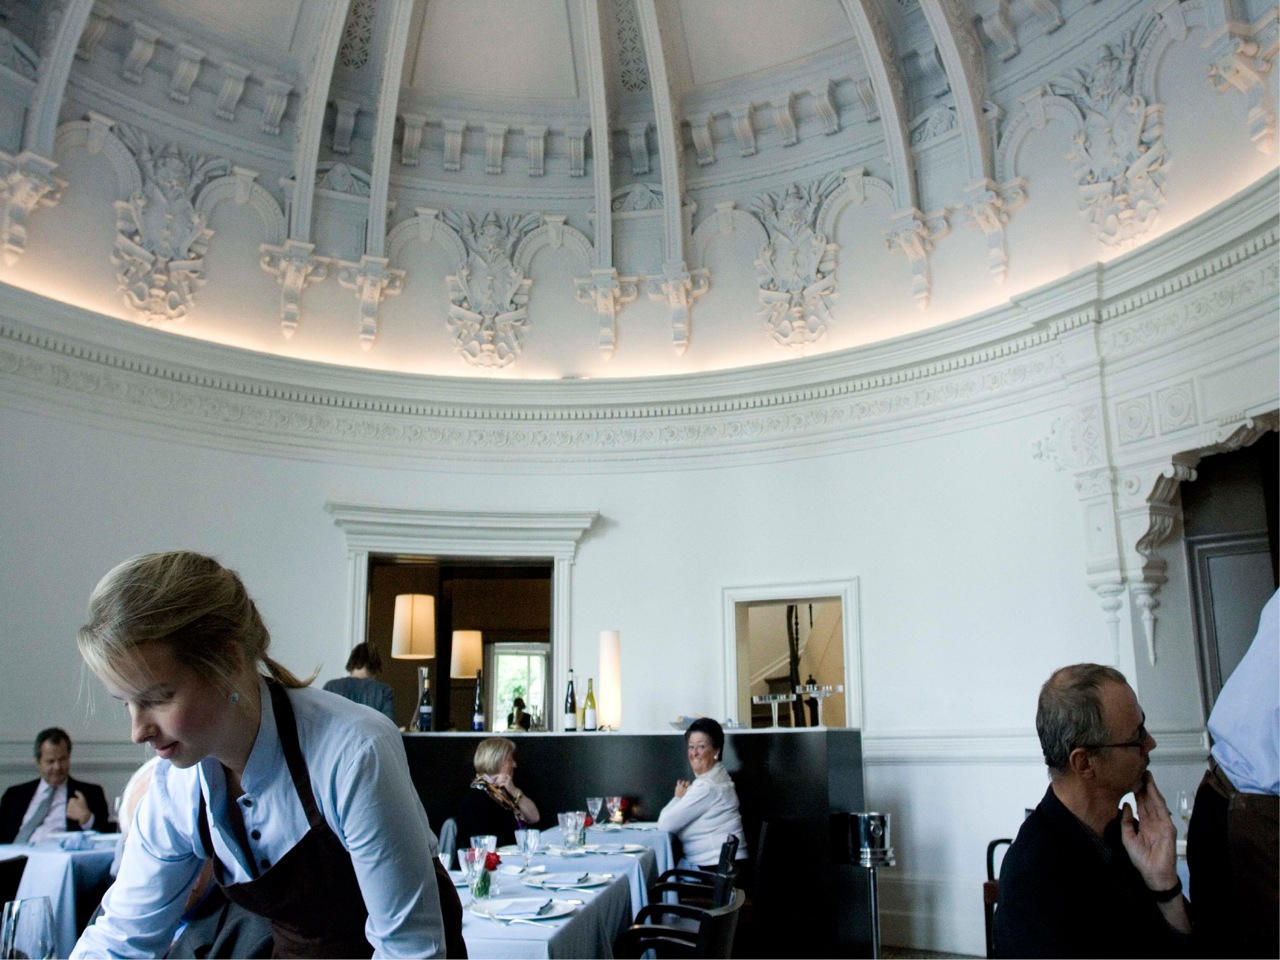 Dome, the restaurant